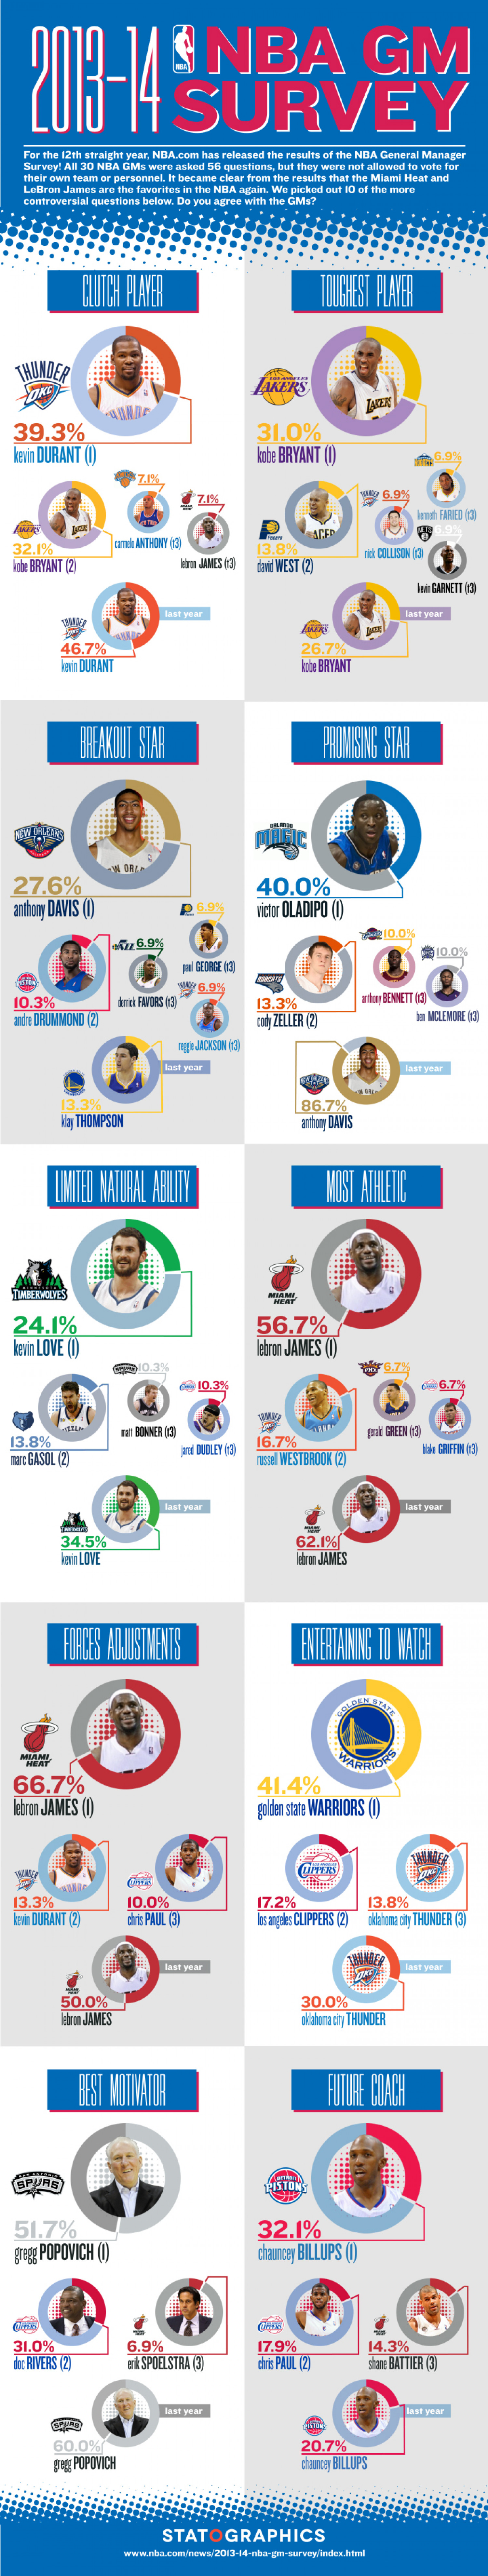 2013-14 NBA GM Survey Infographic